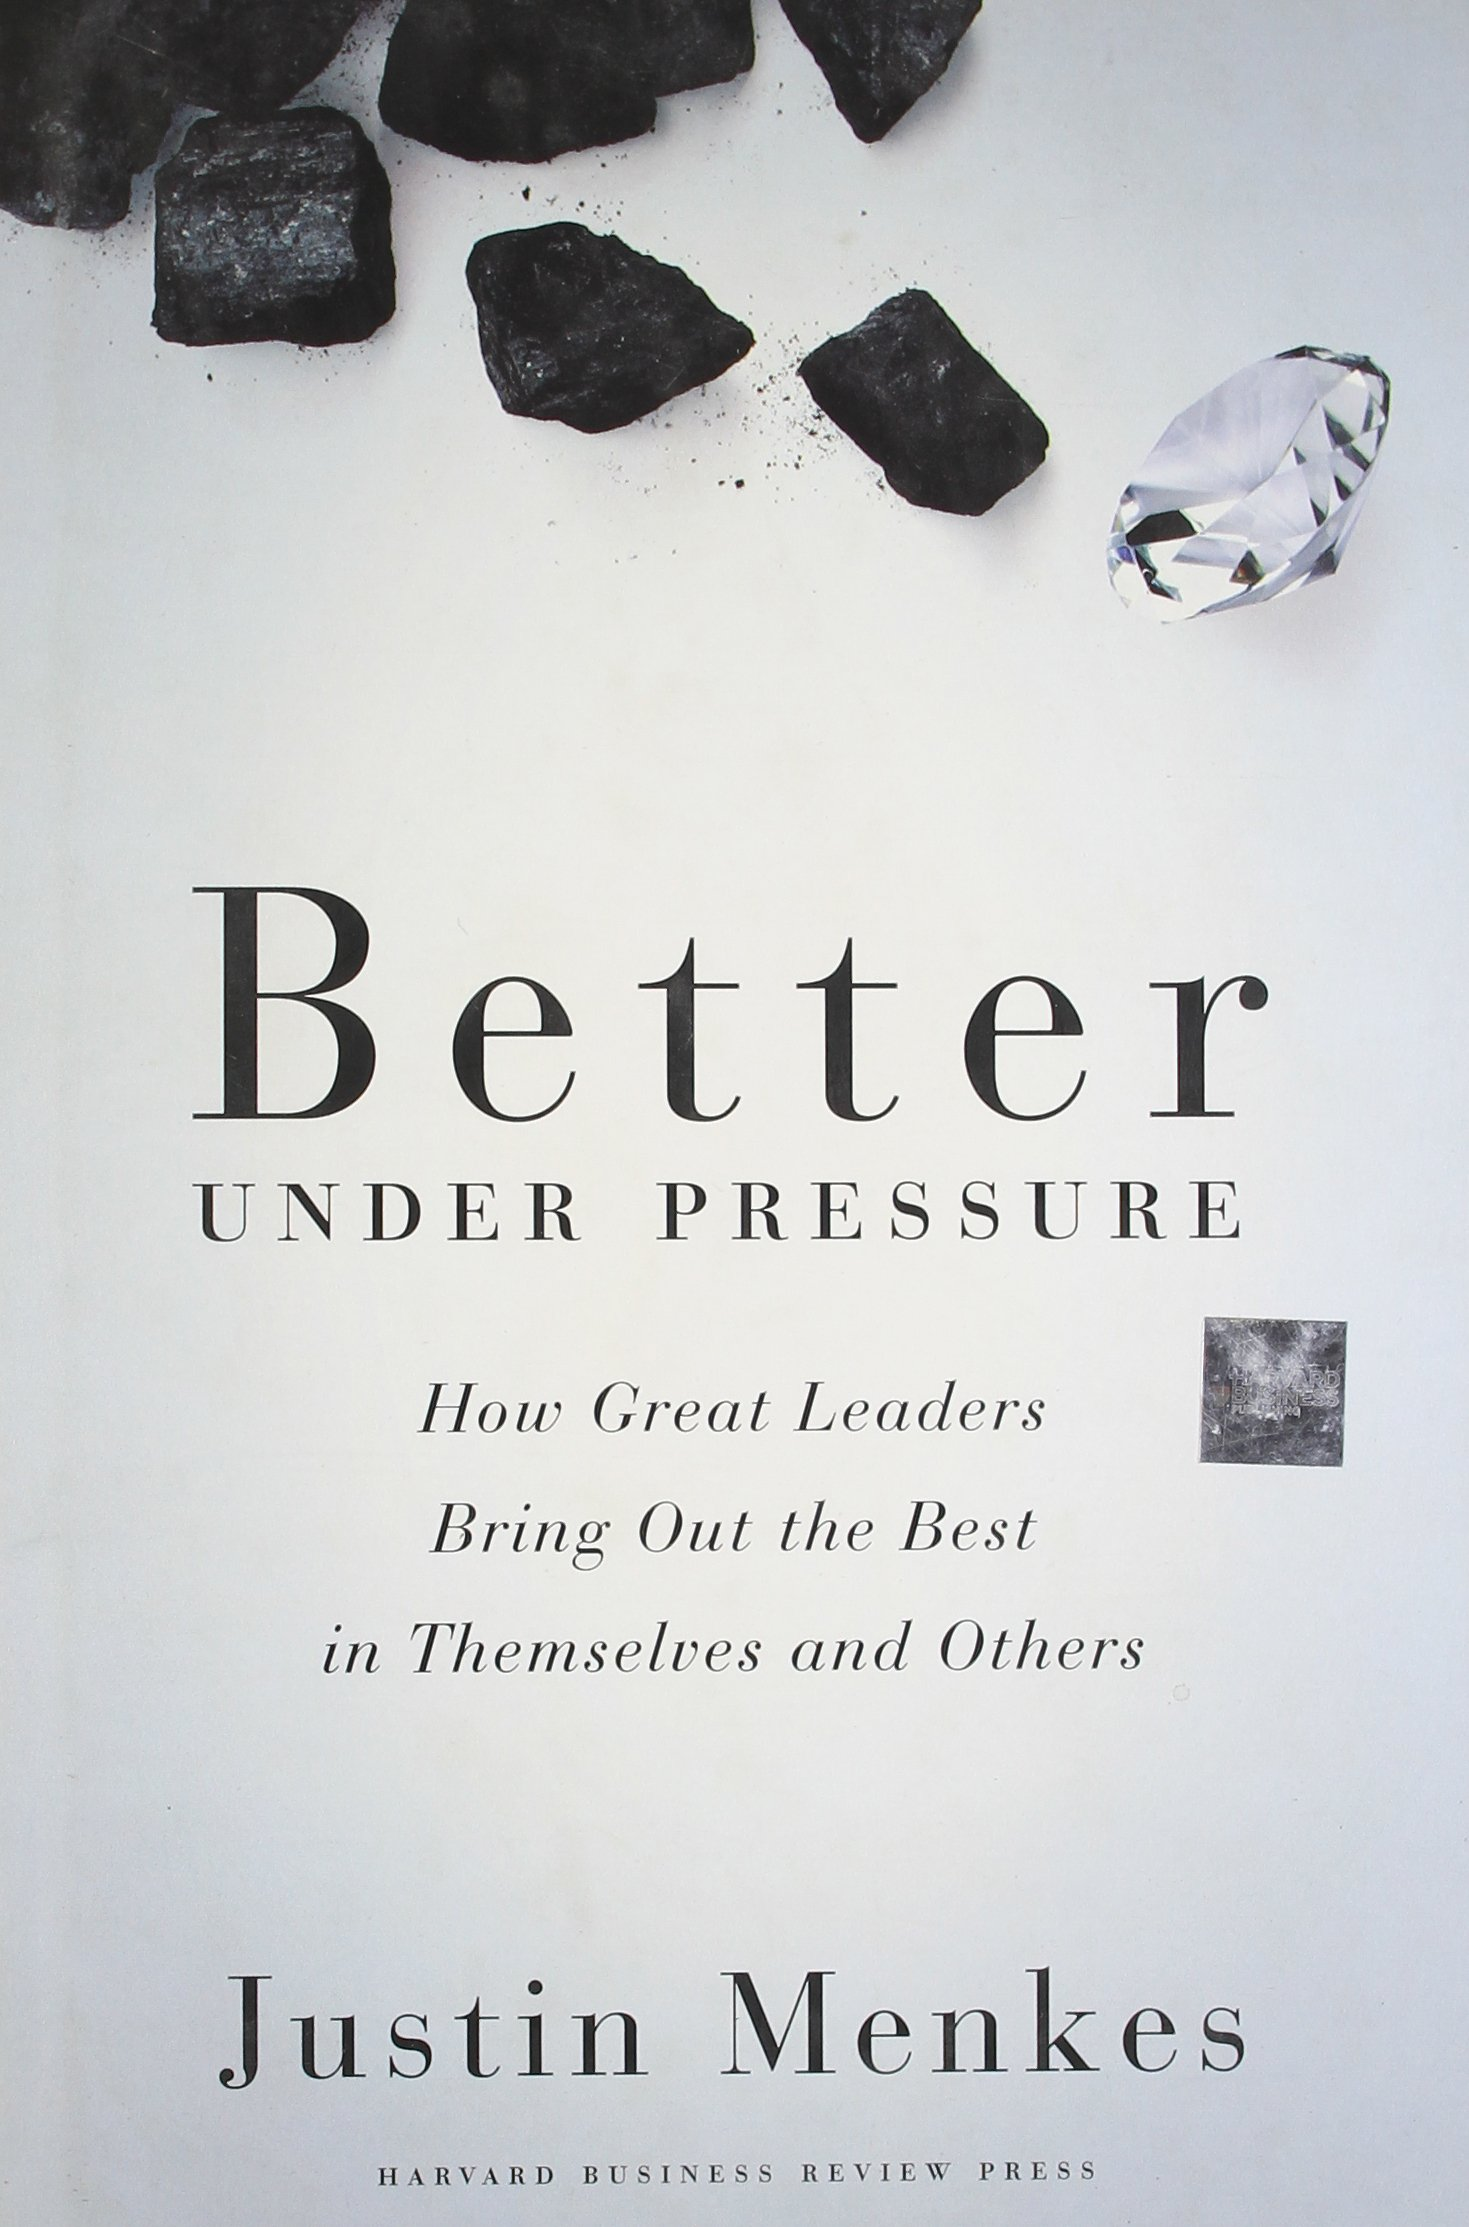 Better Under Pressure: How Great Leaders Bring Out the Best in Themselves and Others pdf